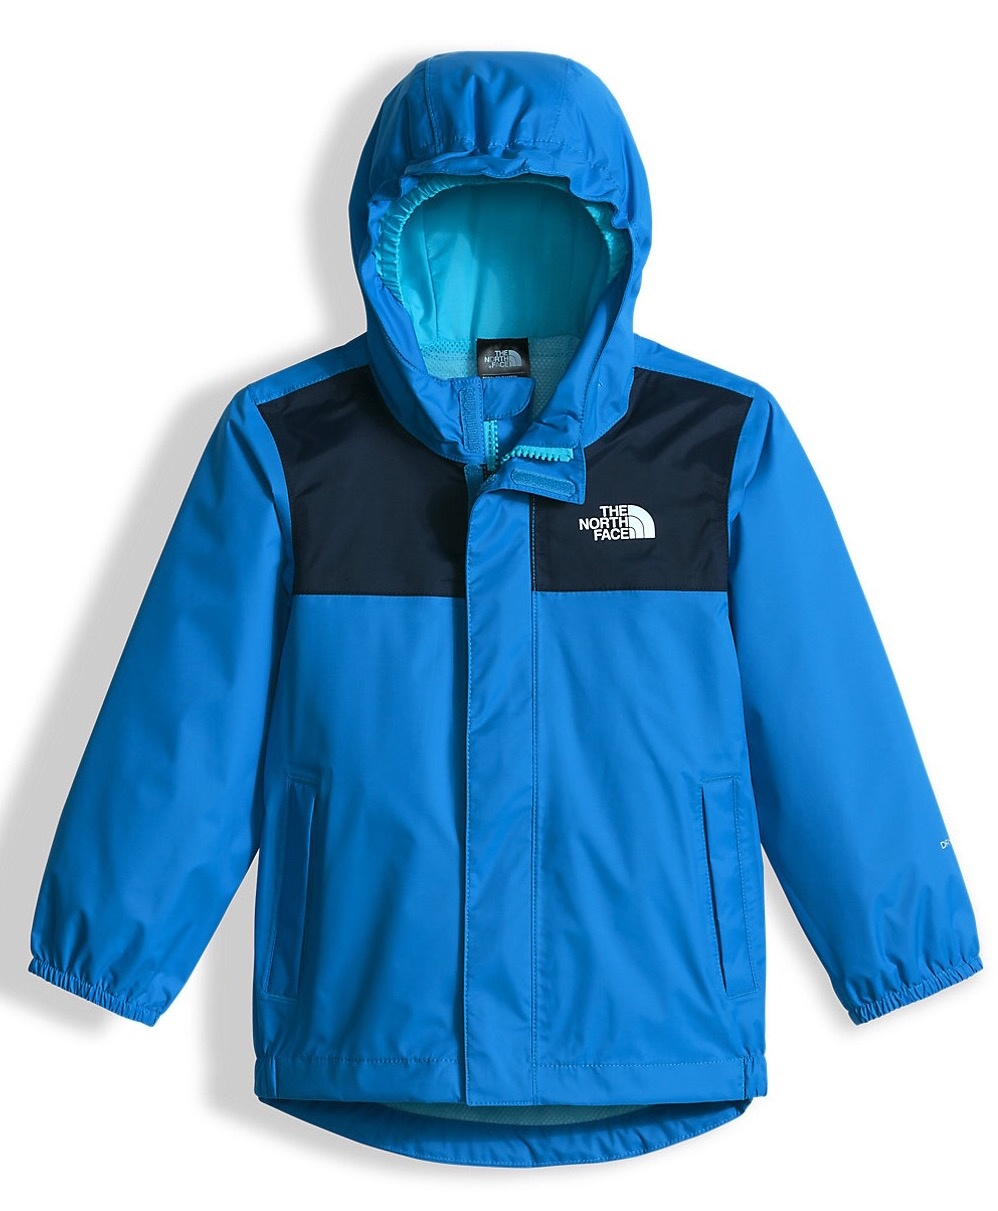 送料無料 THE NORTH FACE Tailout Rain Jacket キッズ パーカー